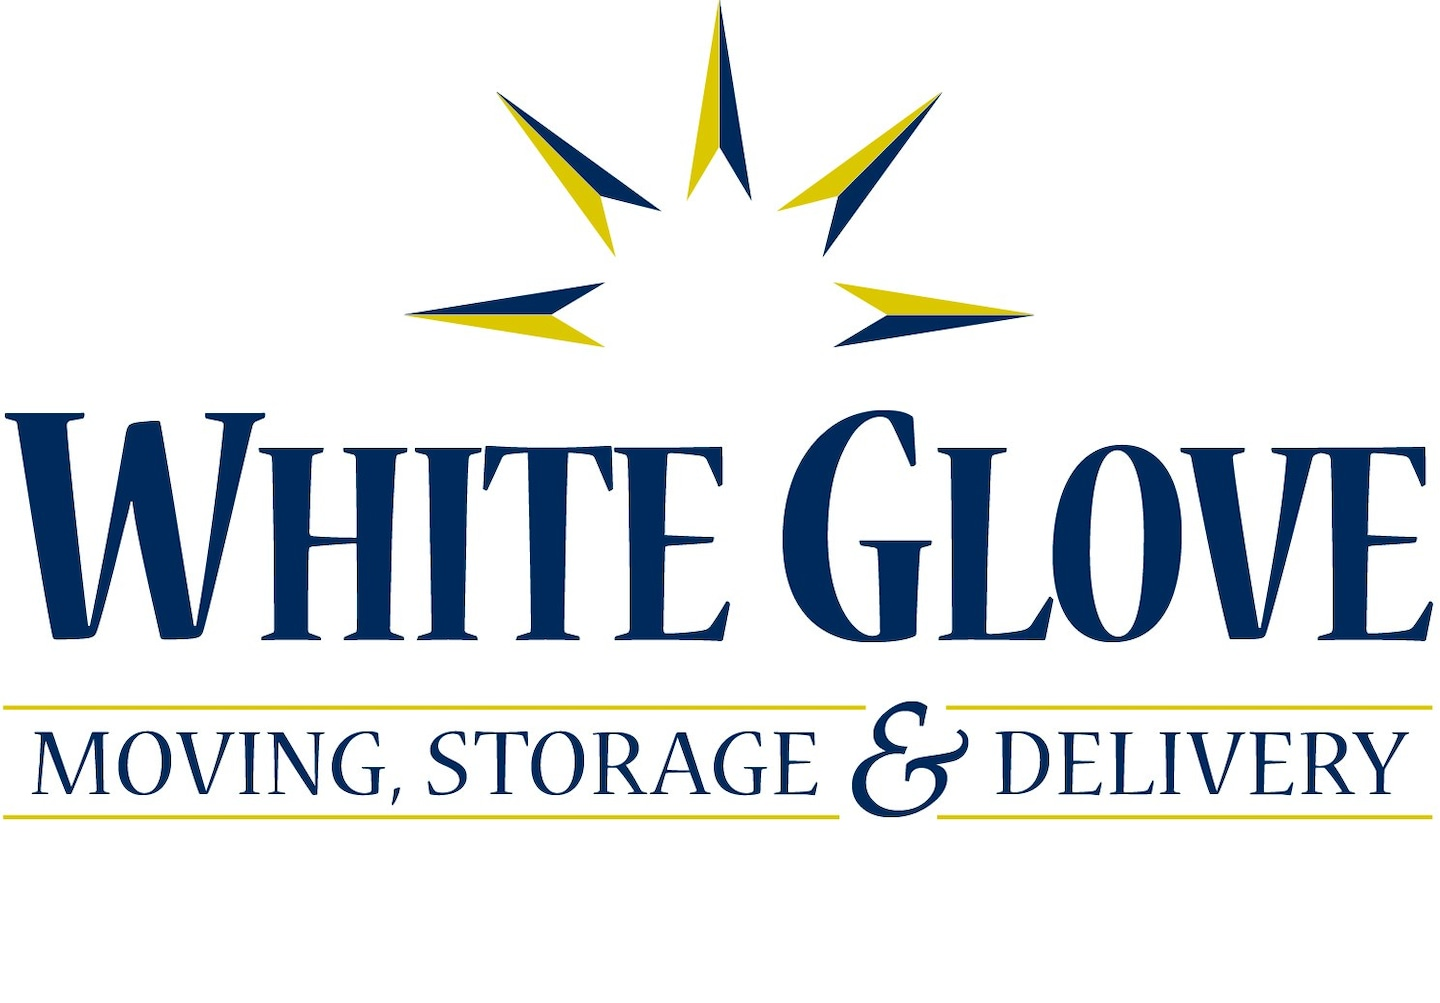 WHITE GLOVE, MOVING, STORAGE & DELIVERY